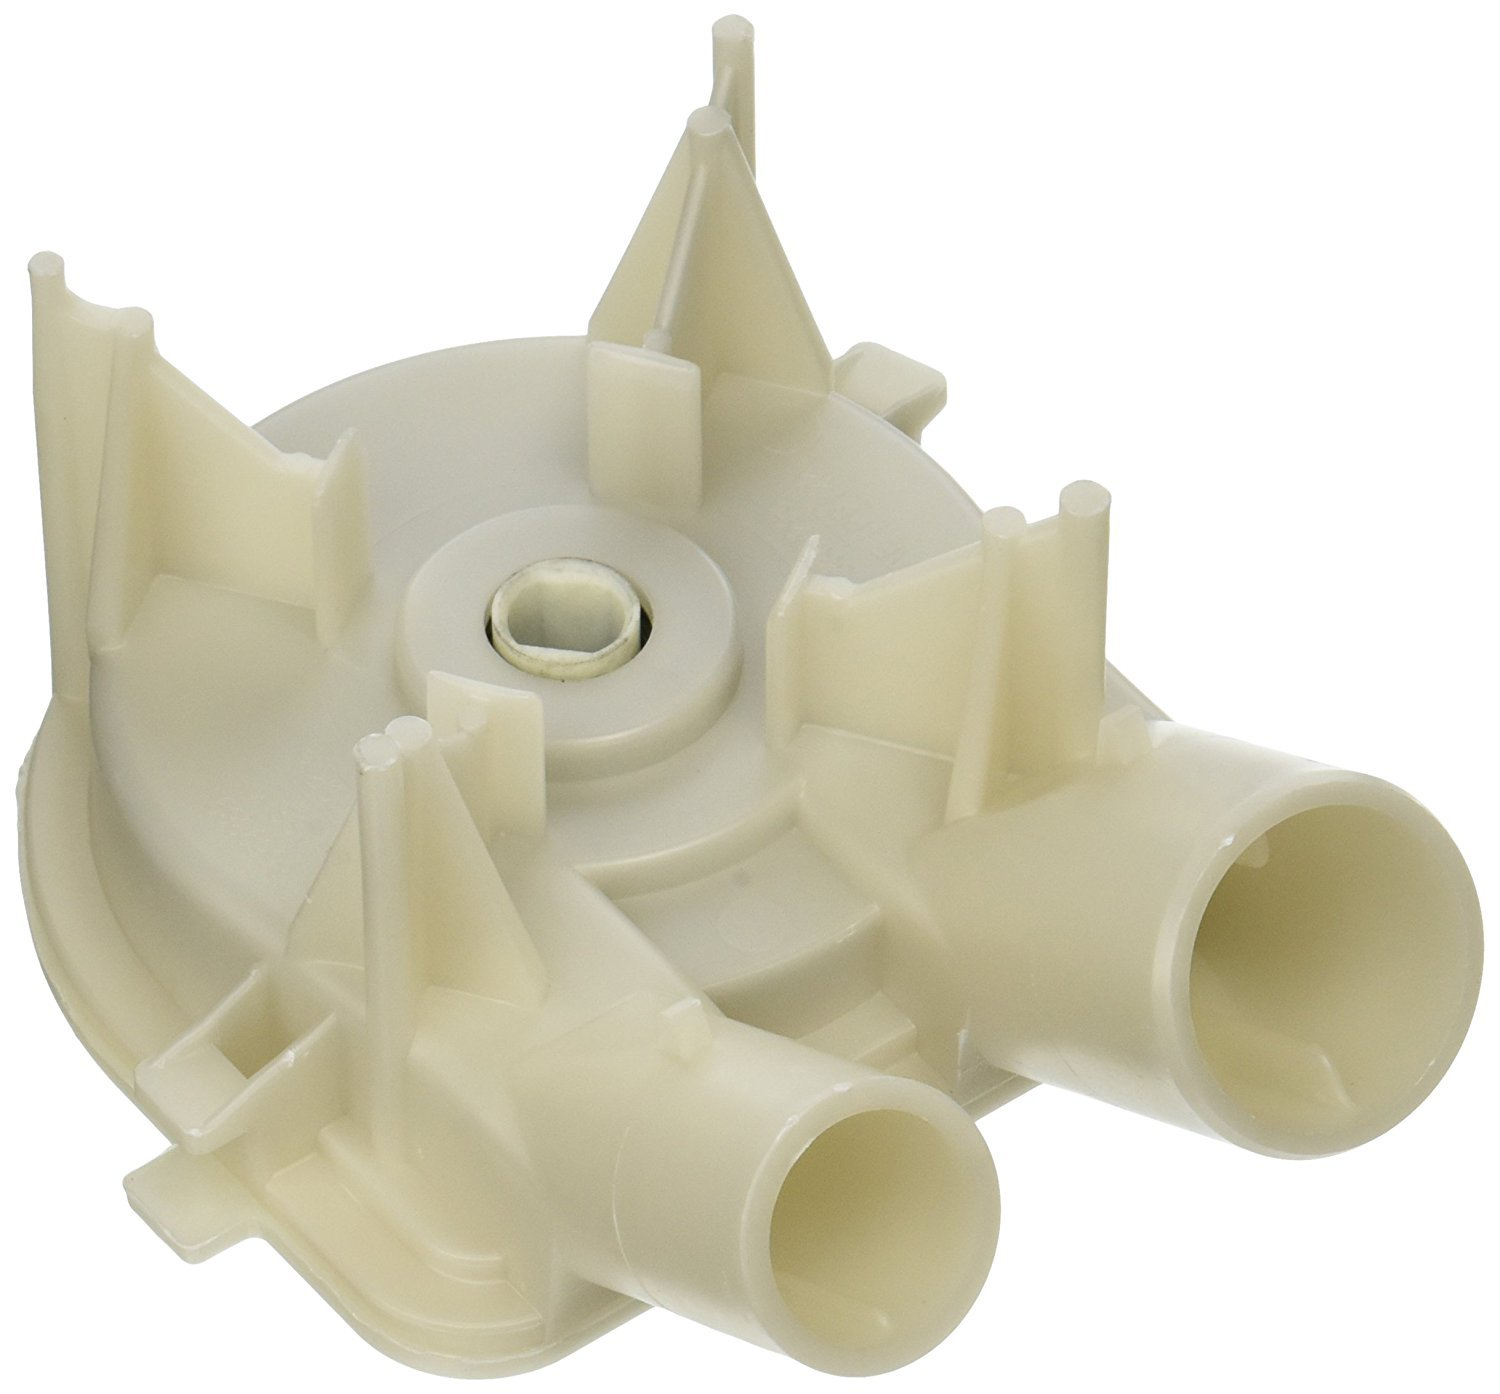 Quality Replacement Drain Pump 3363394 made for Whirlpool Washer by Q.Replacement